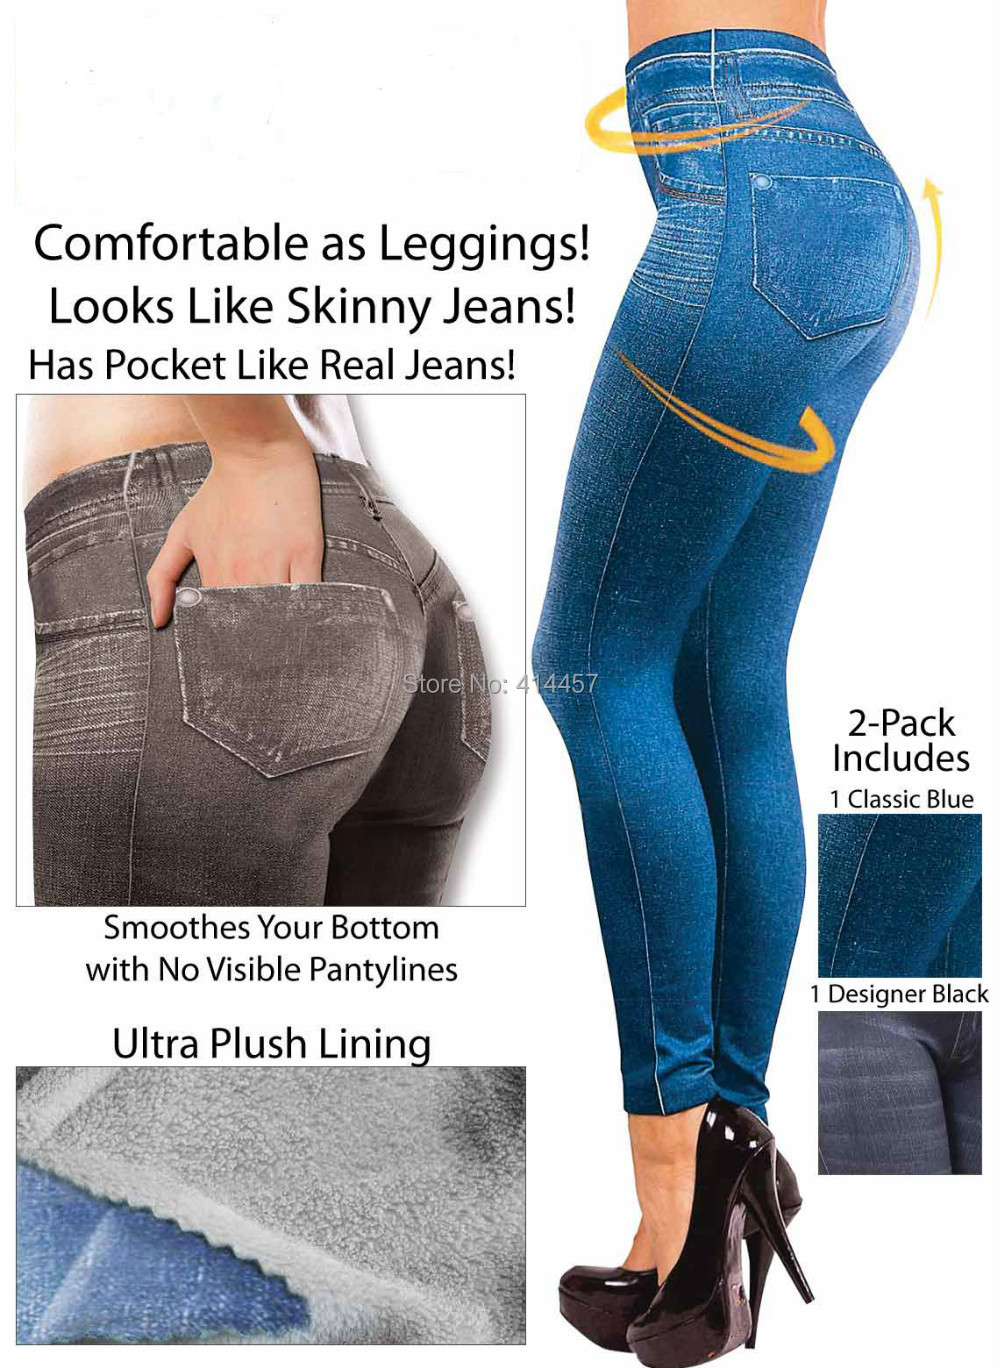 2015 popular womens' jean printed slim jeggings legging with 2 real pockets1 lot=2pcs(1 blue+1black) All free shipping(China (Mainland))